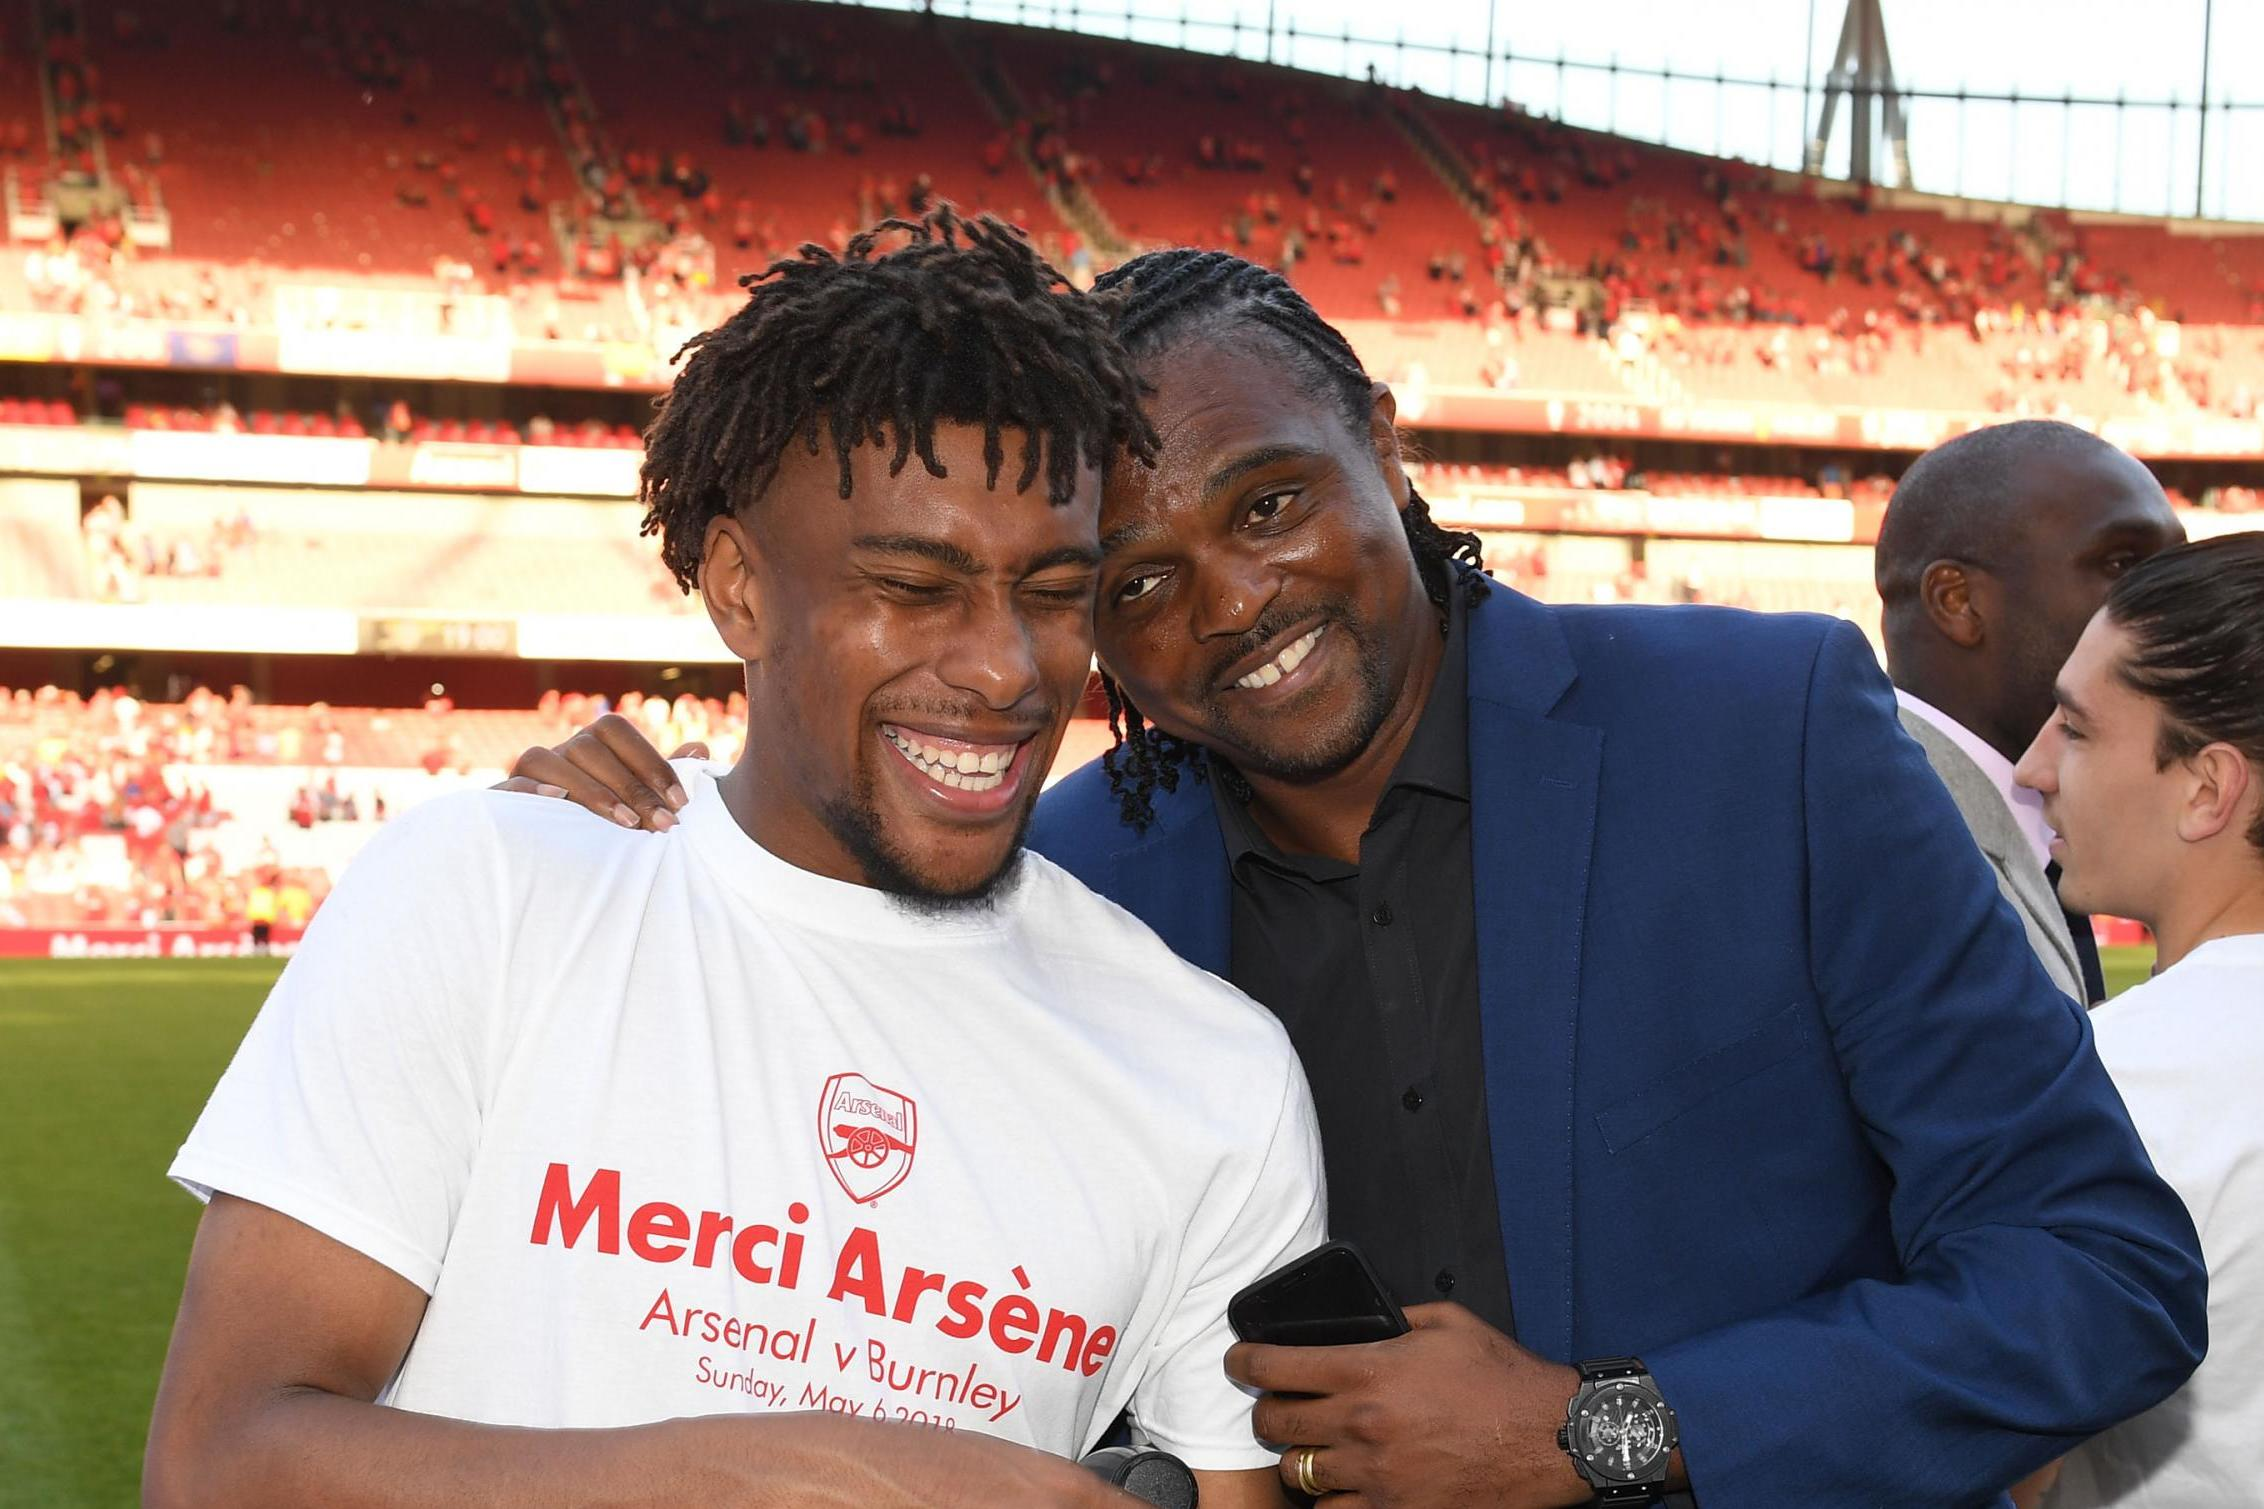 Arsenal hand Iwobi new deal, sell Akpom to PAOK